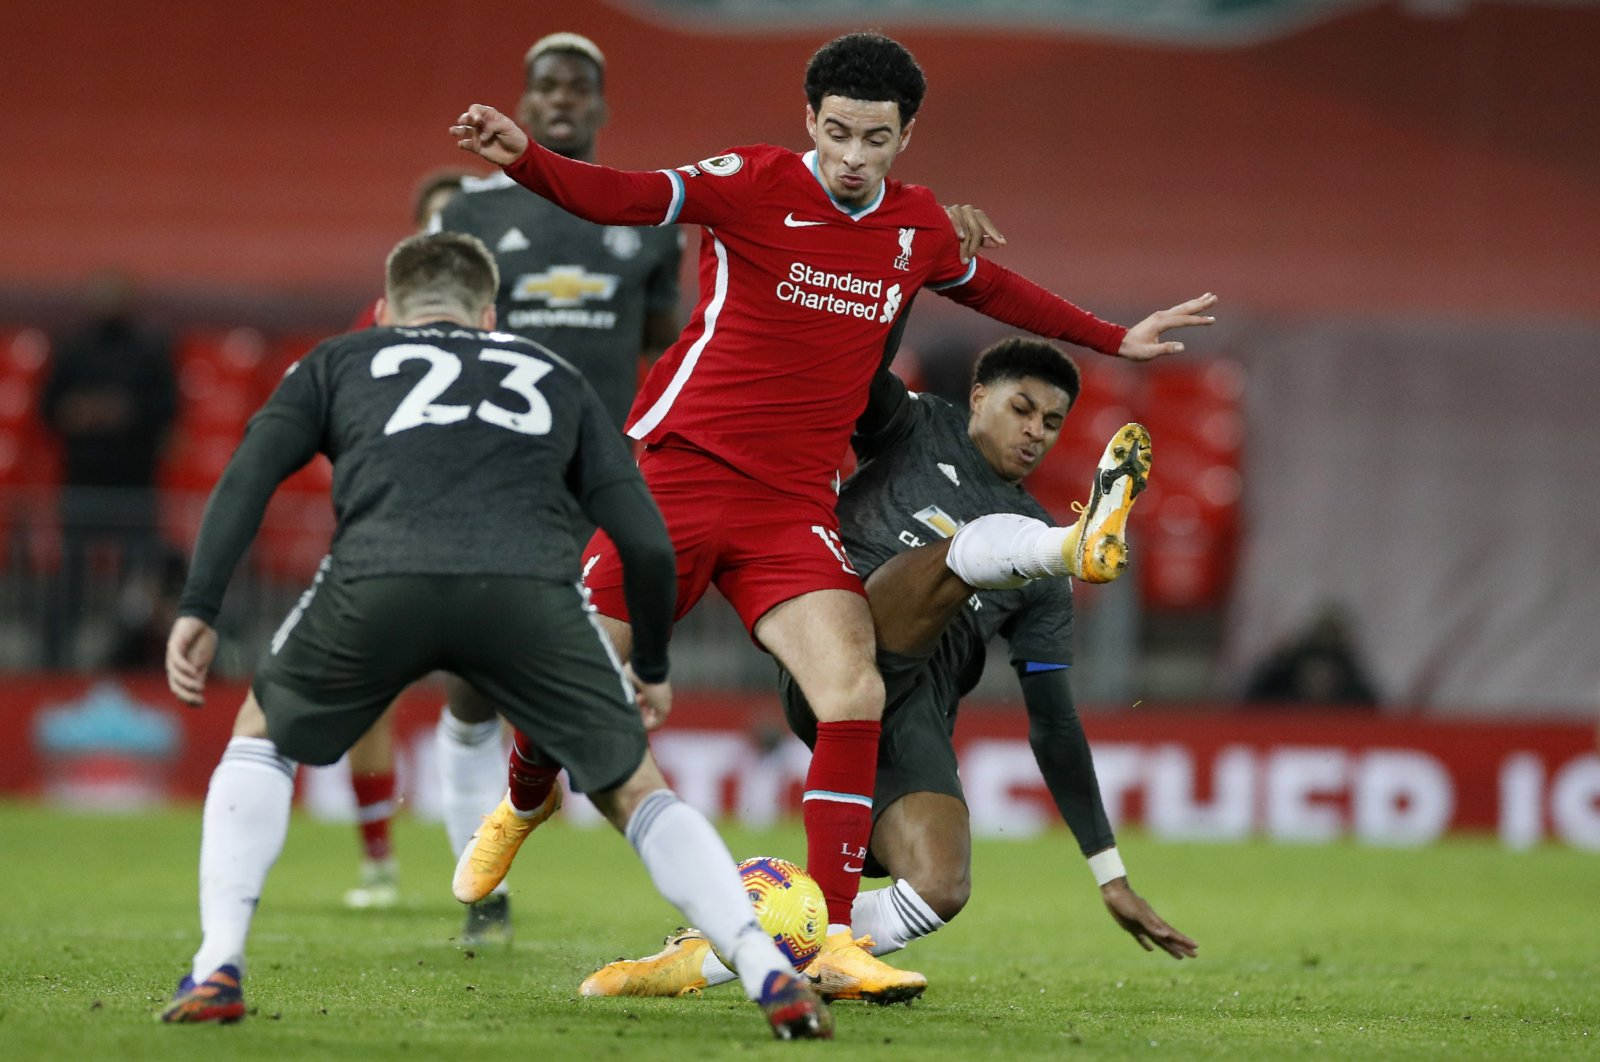 Manchester United's Marcus Rashford (R) vies for the ball with Liverpool's Curtis Jones during their English Premier League match at the Anfield, Liverpool, England, Jan. 17, 2021.(AP Photos)